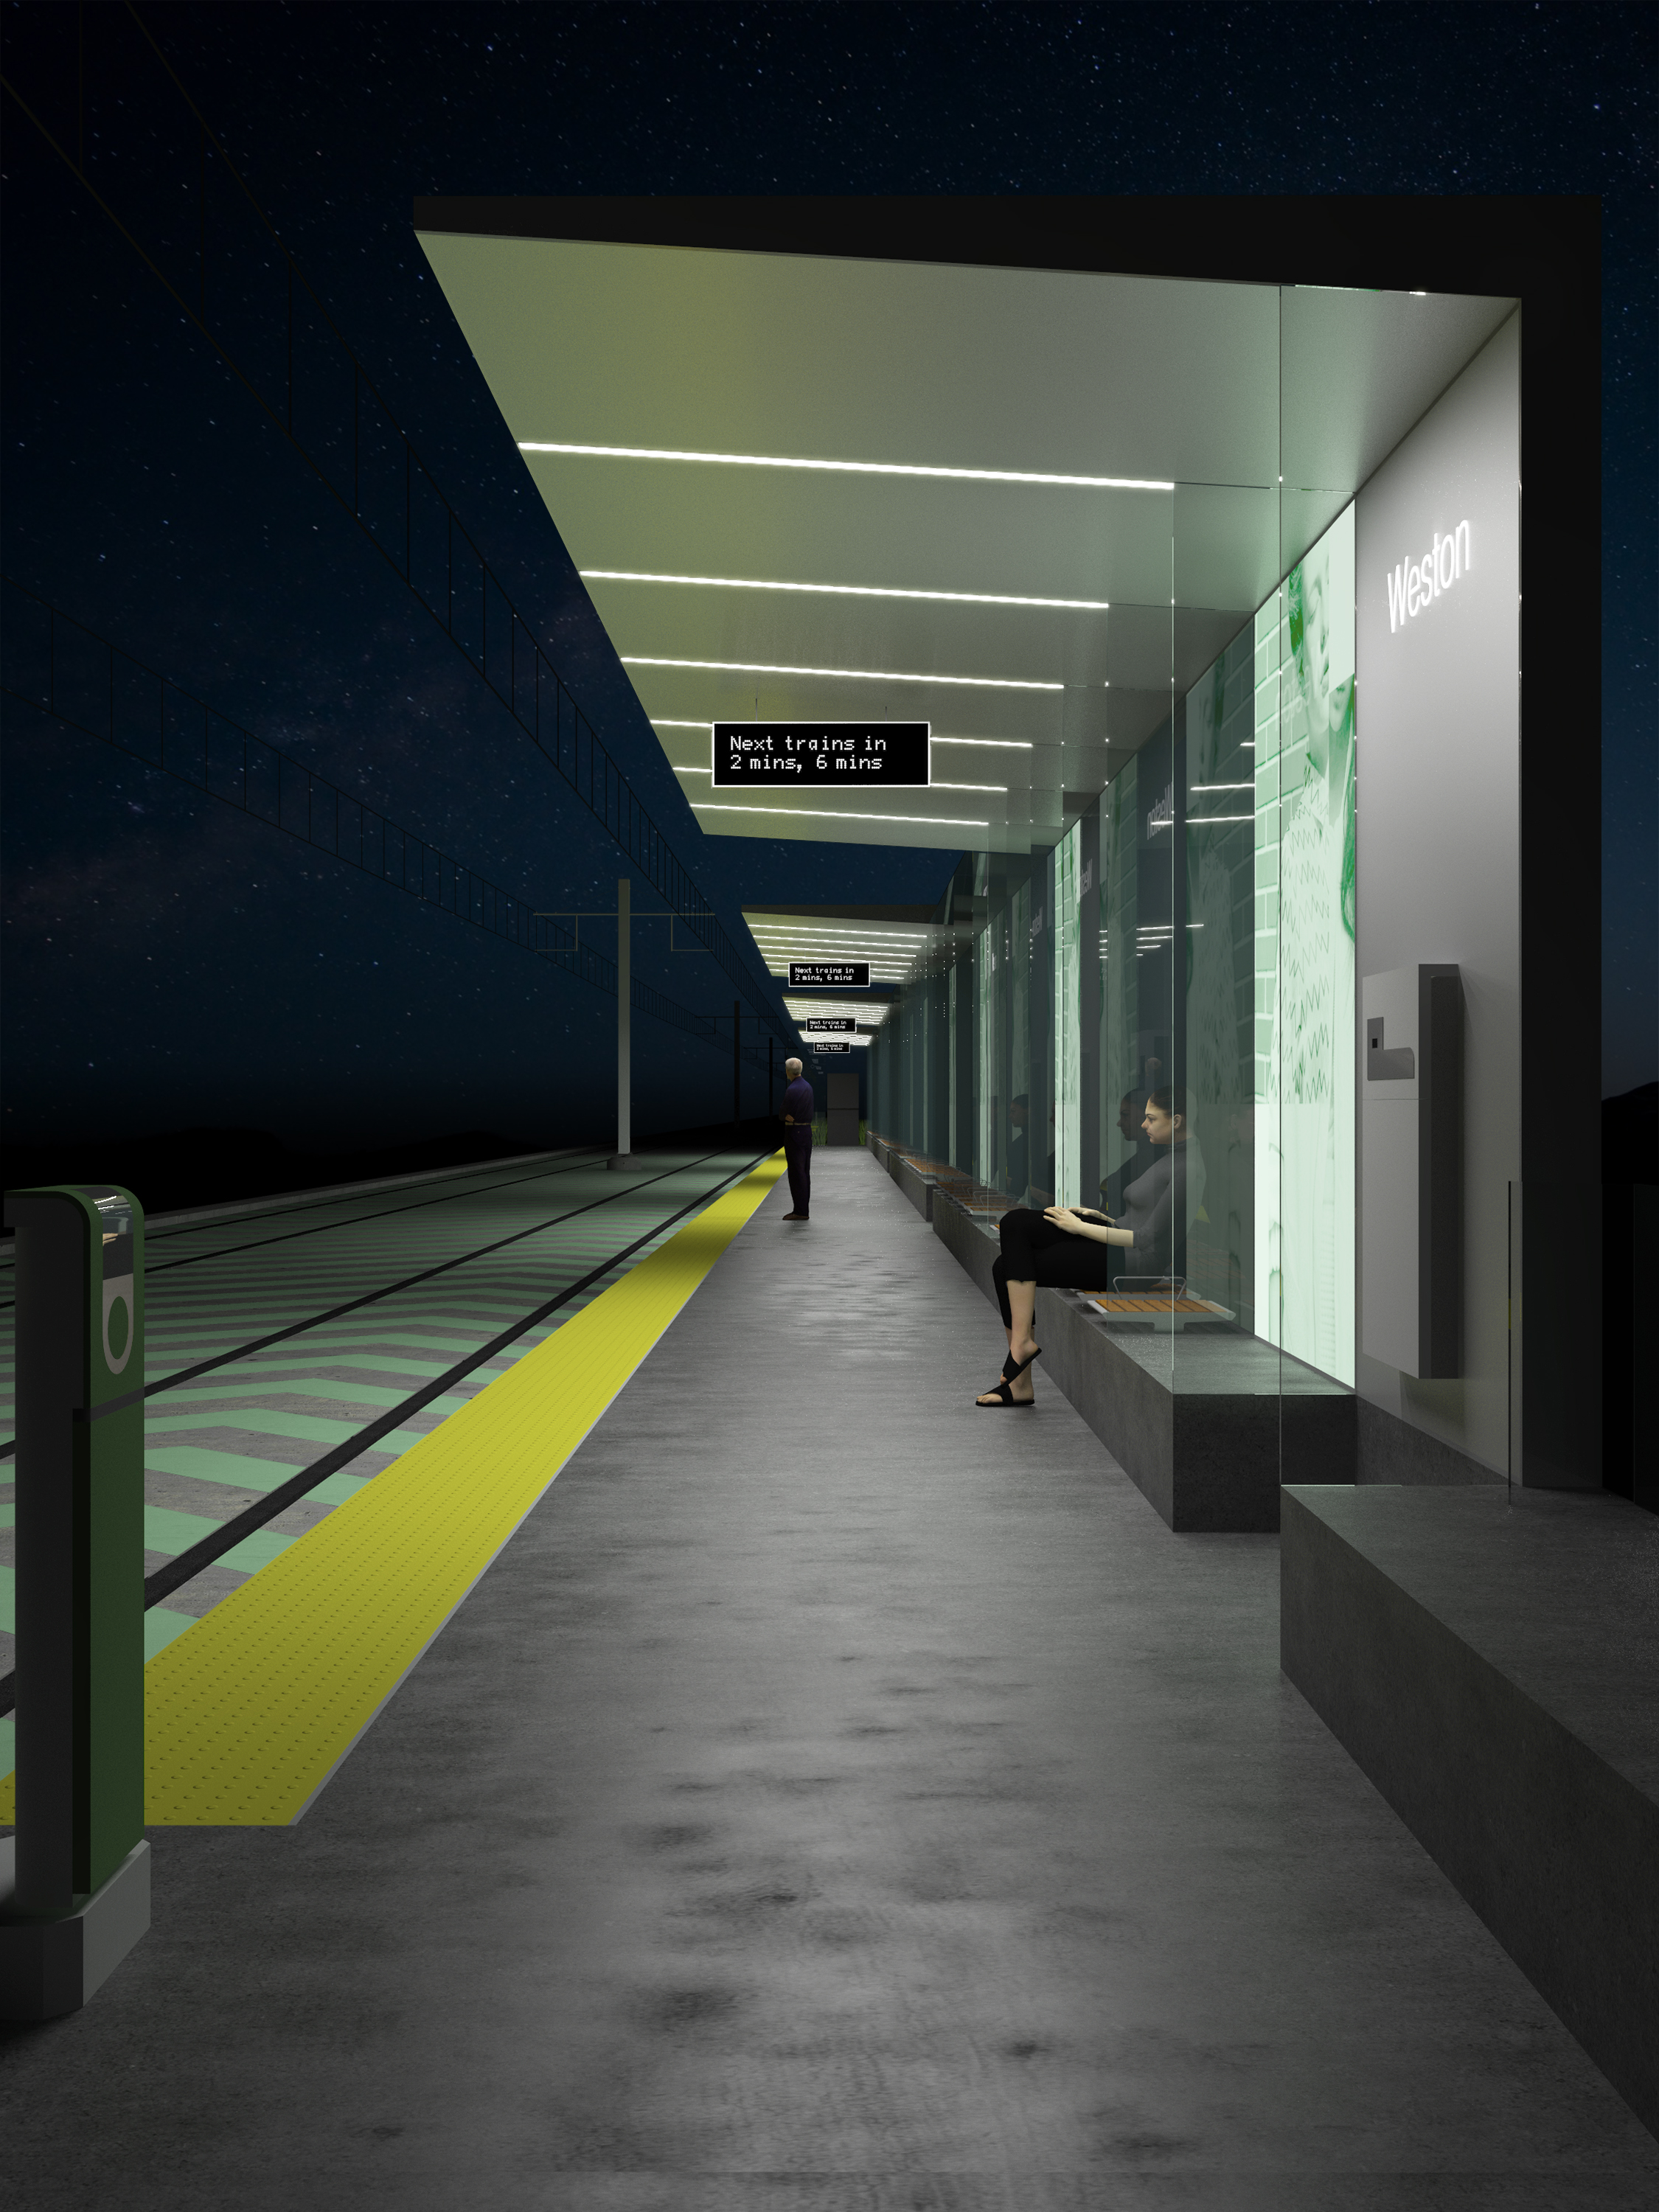 Finch West LRT DX - Platforms at night